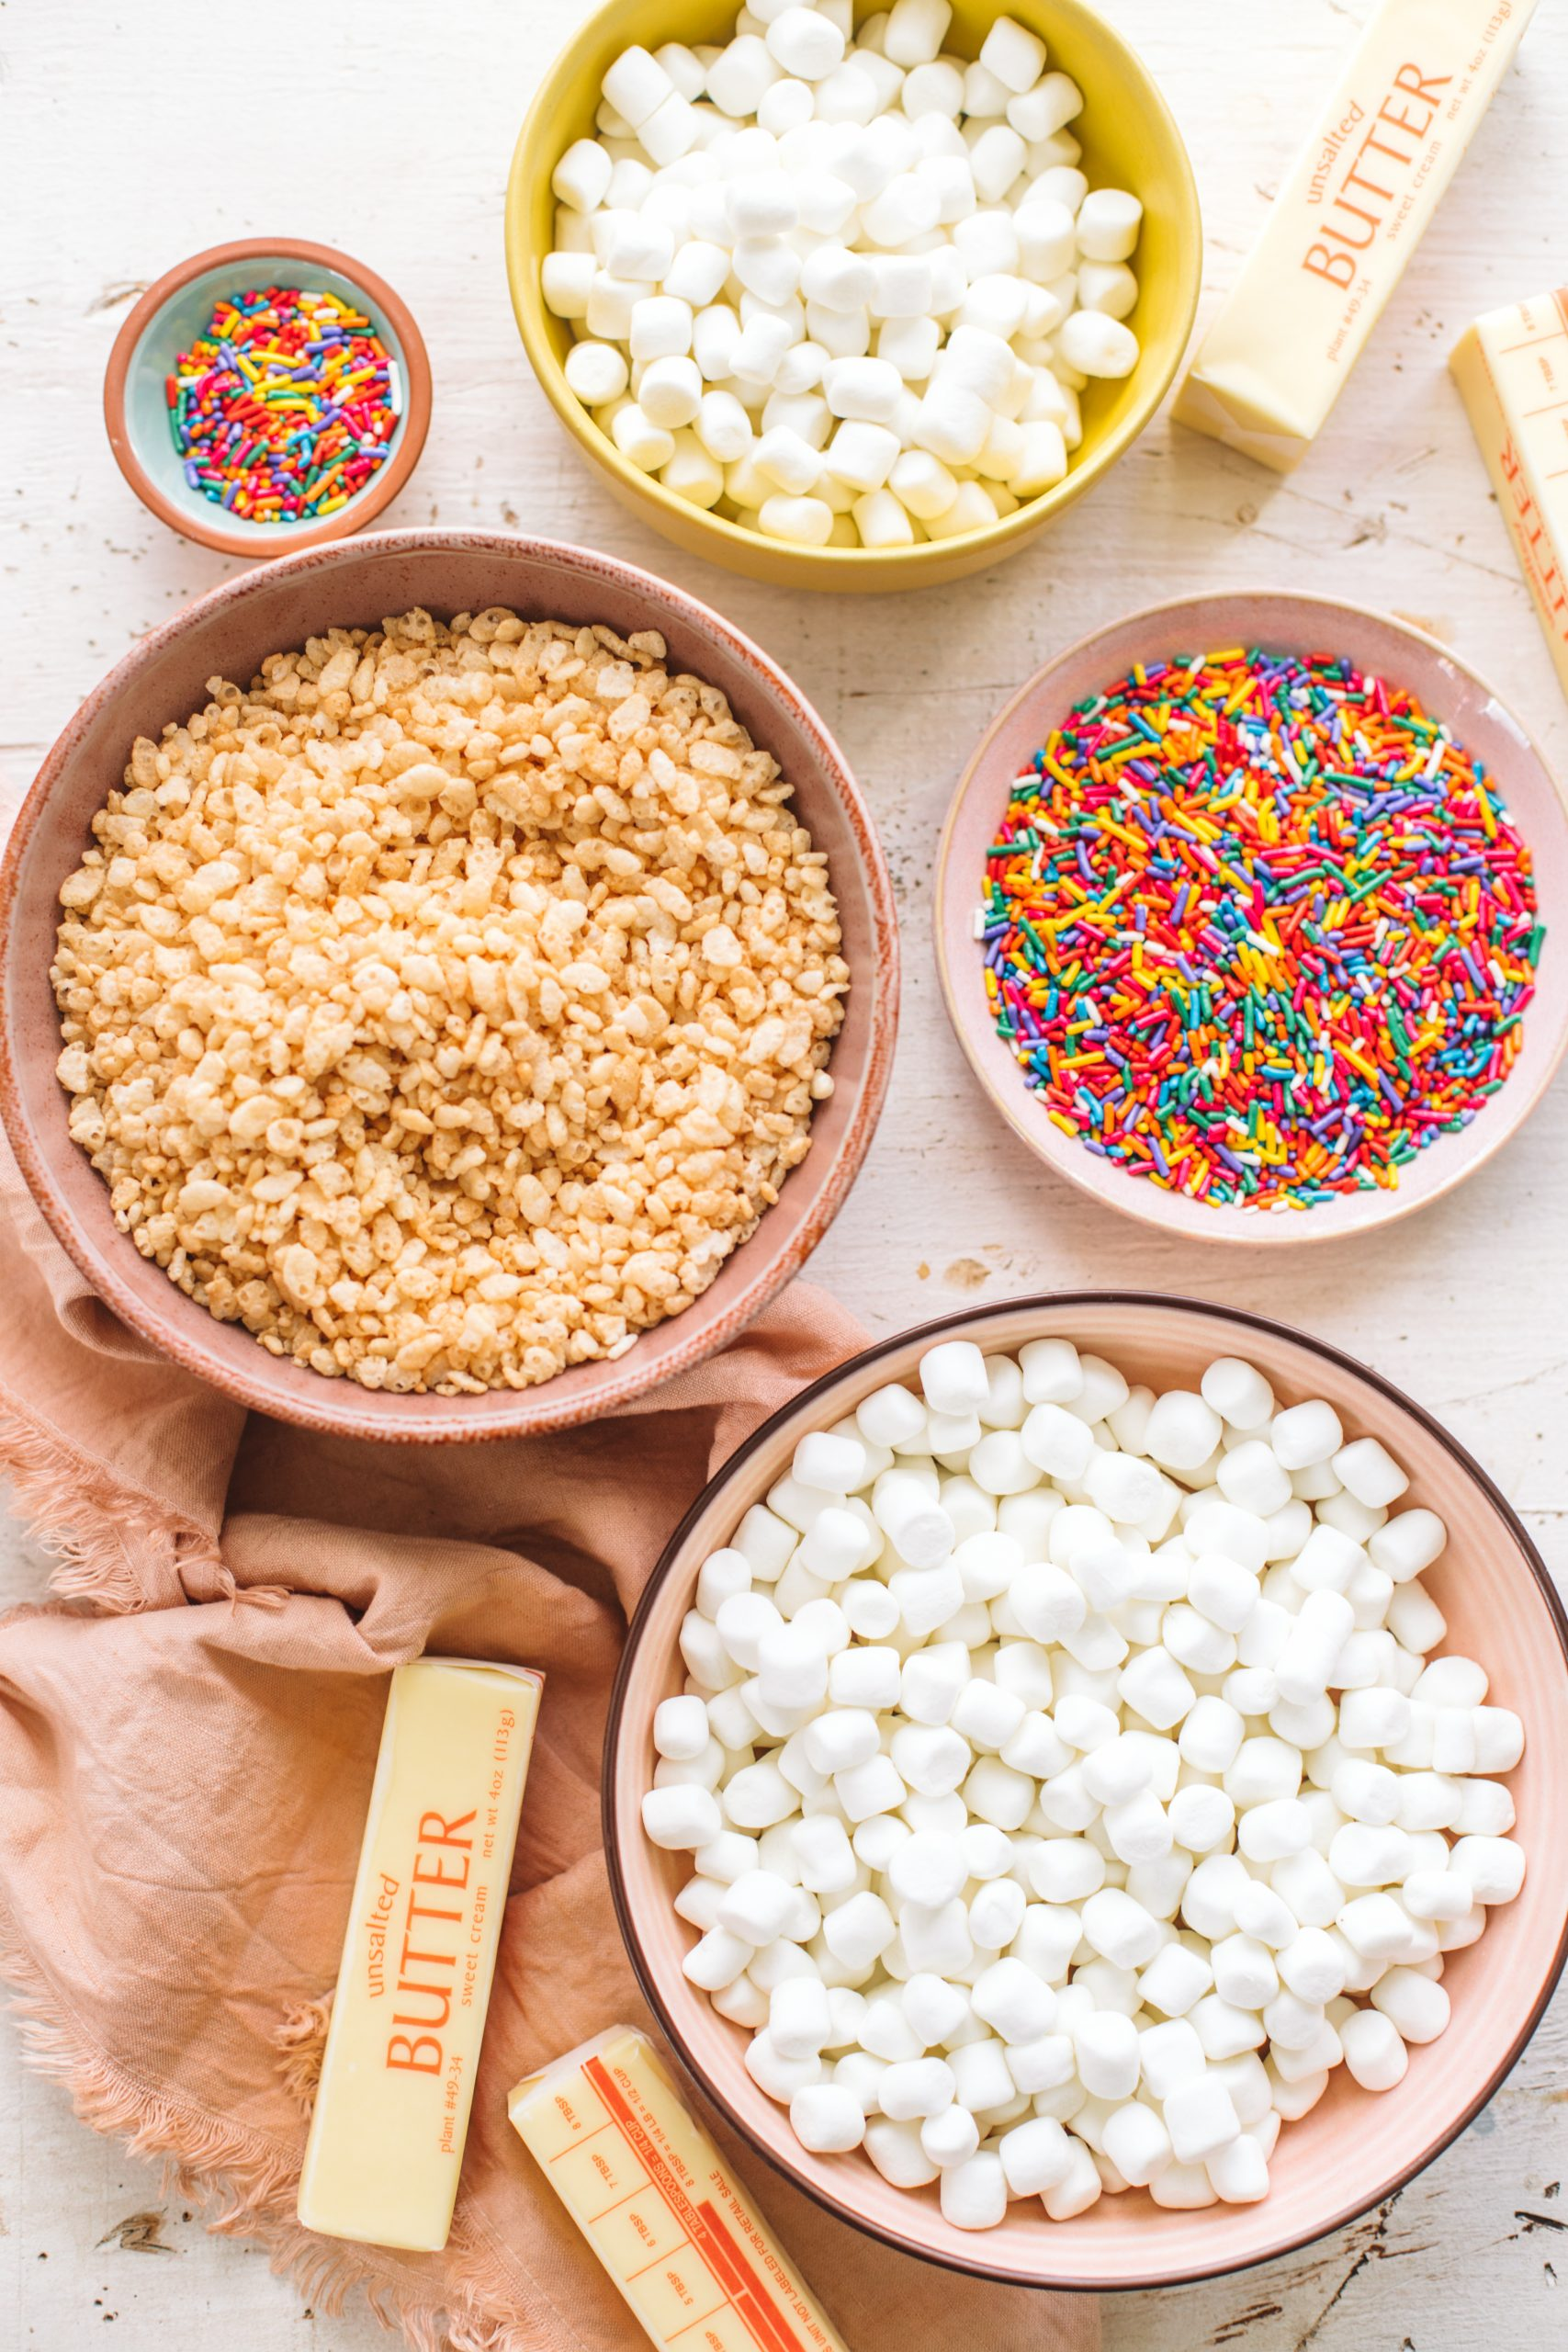 Bowls of marshmallows, rice krispies, sprinkles and butter.